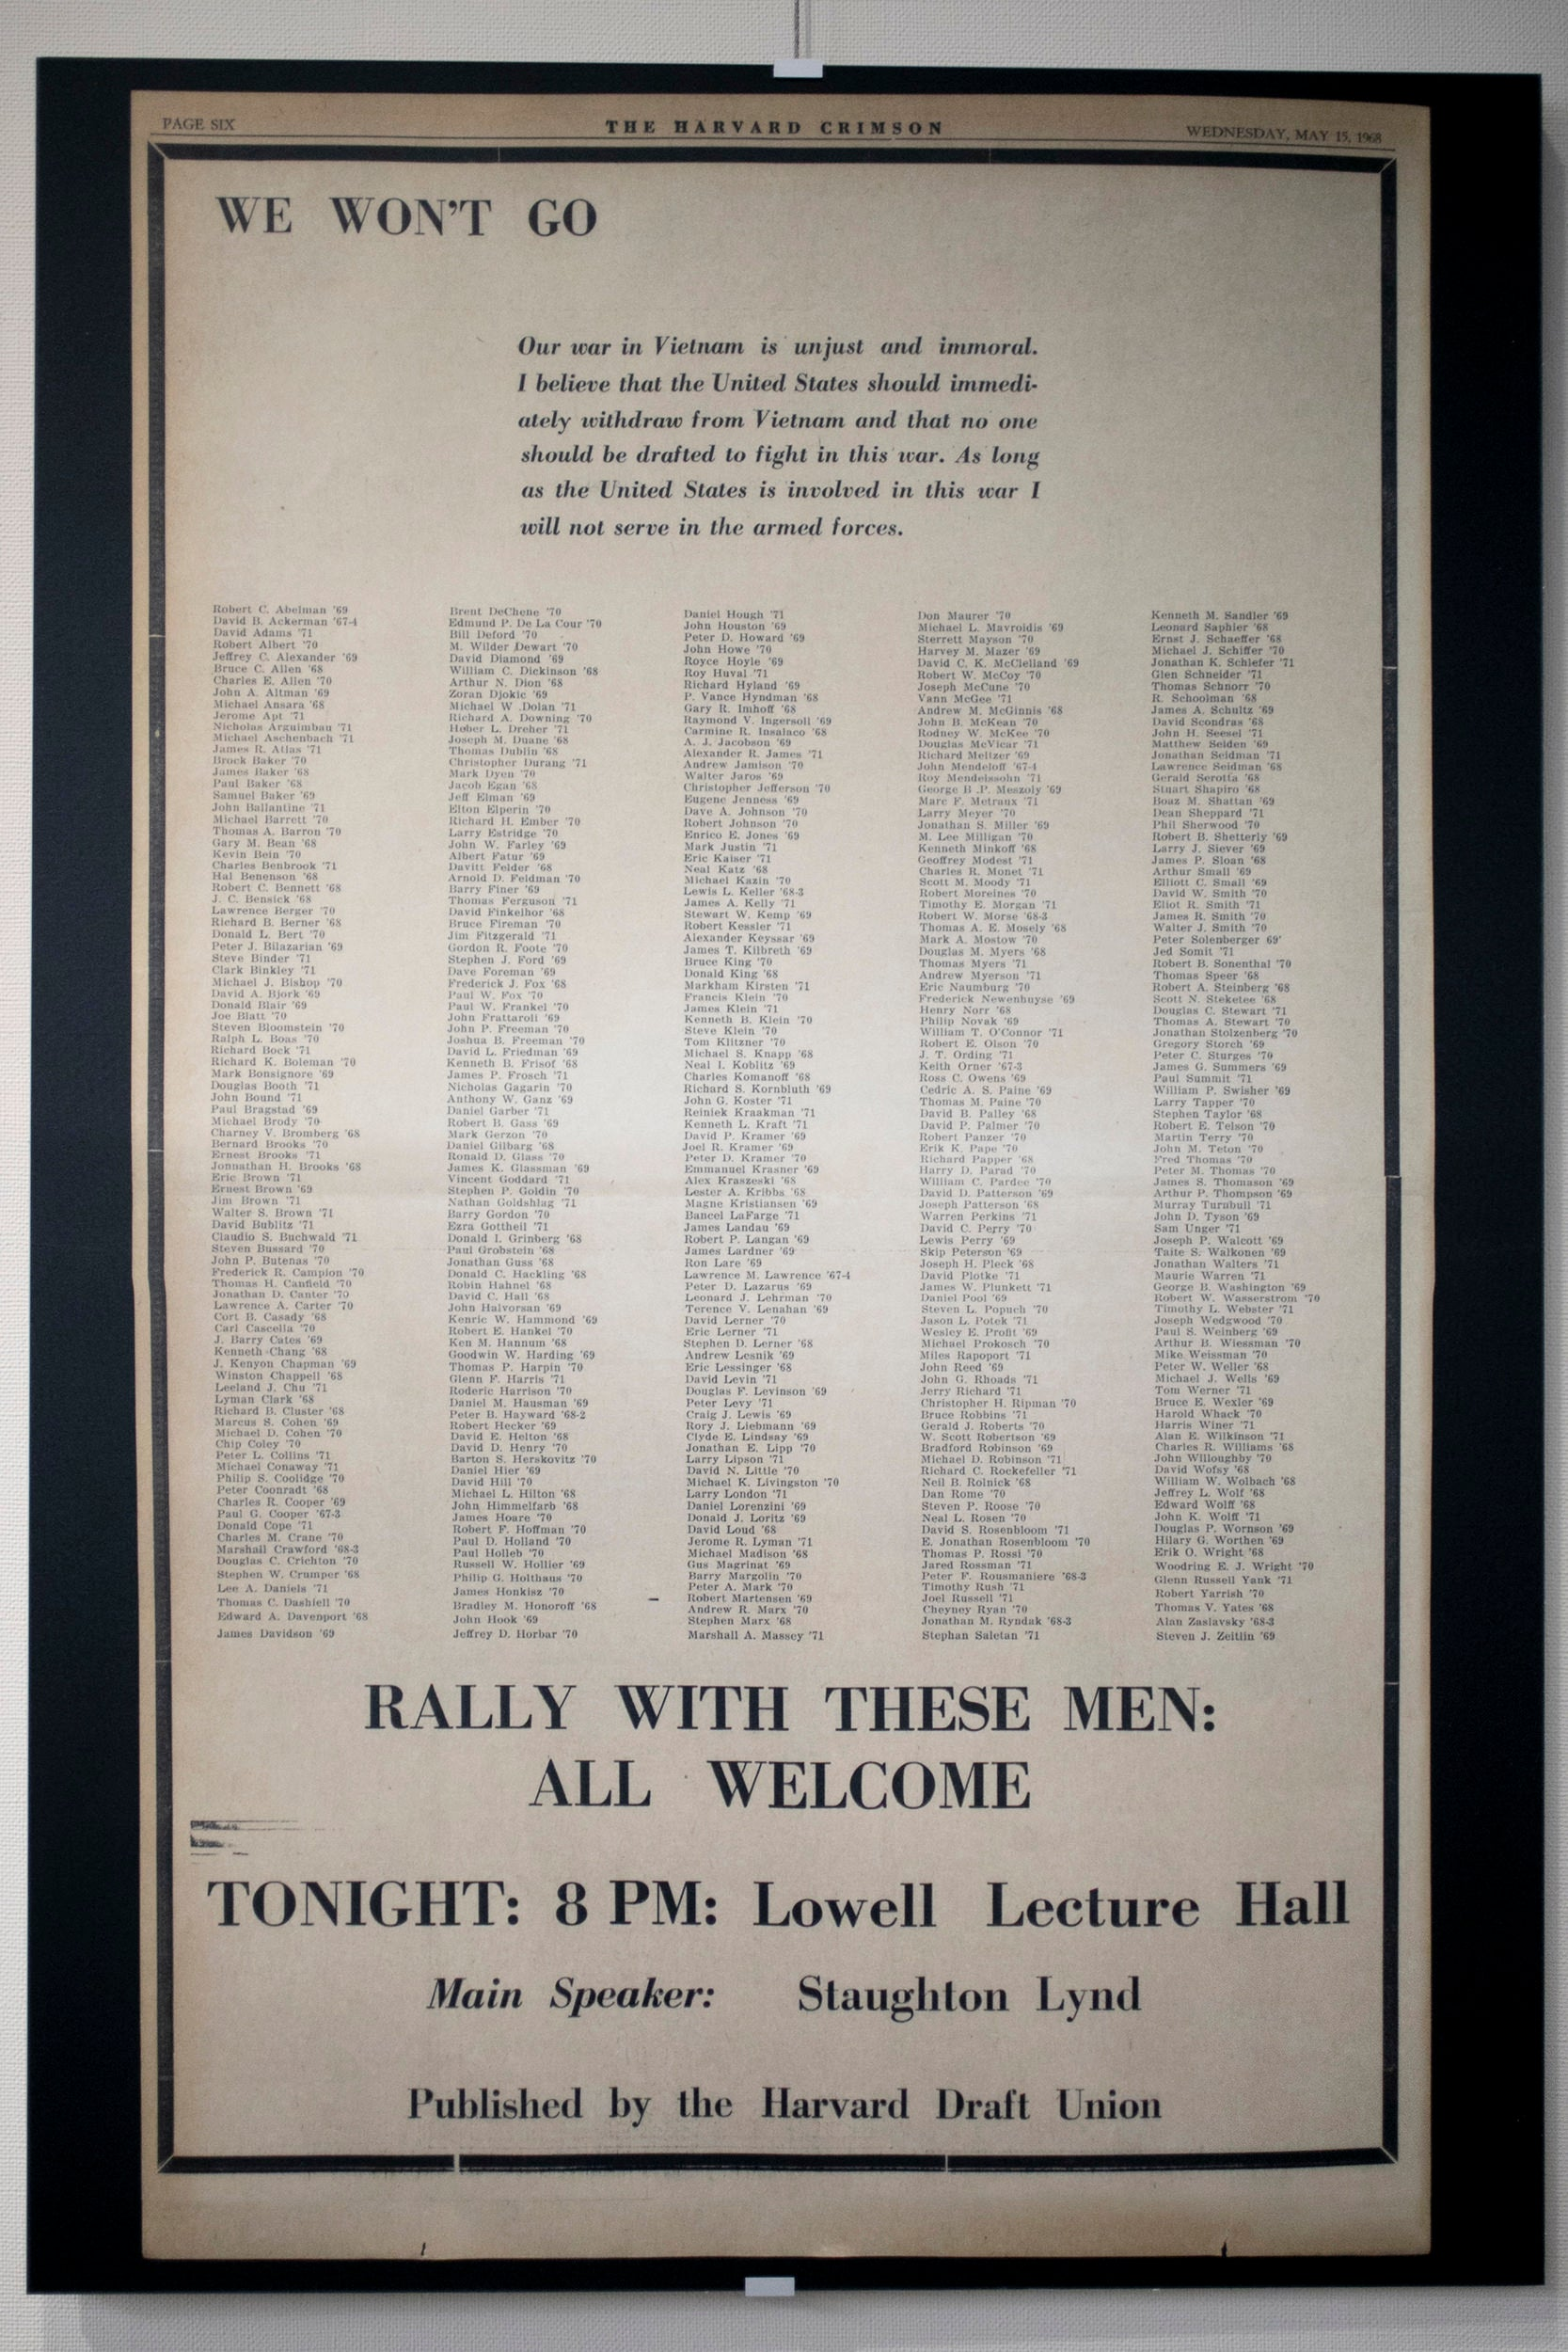 List of Harvard draft protesters in 1968.